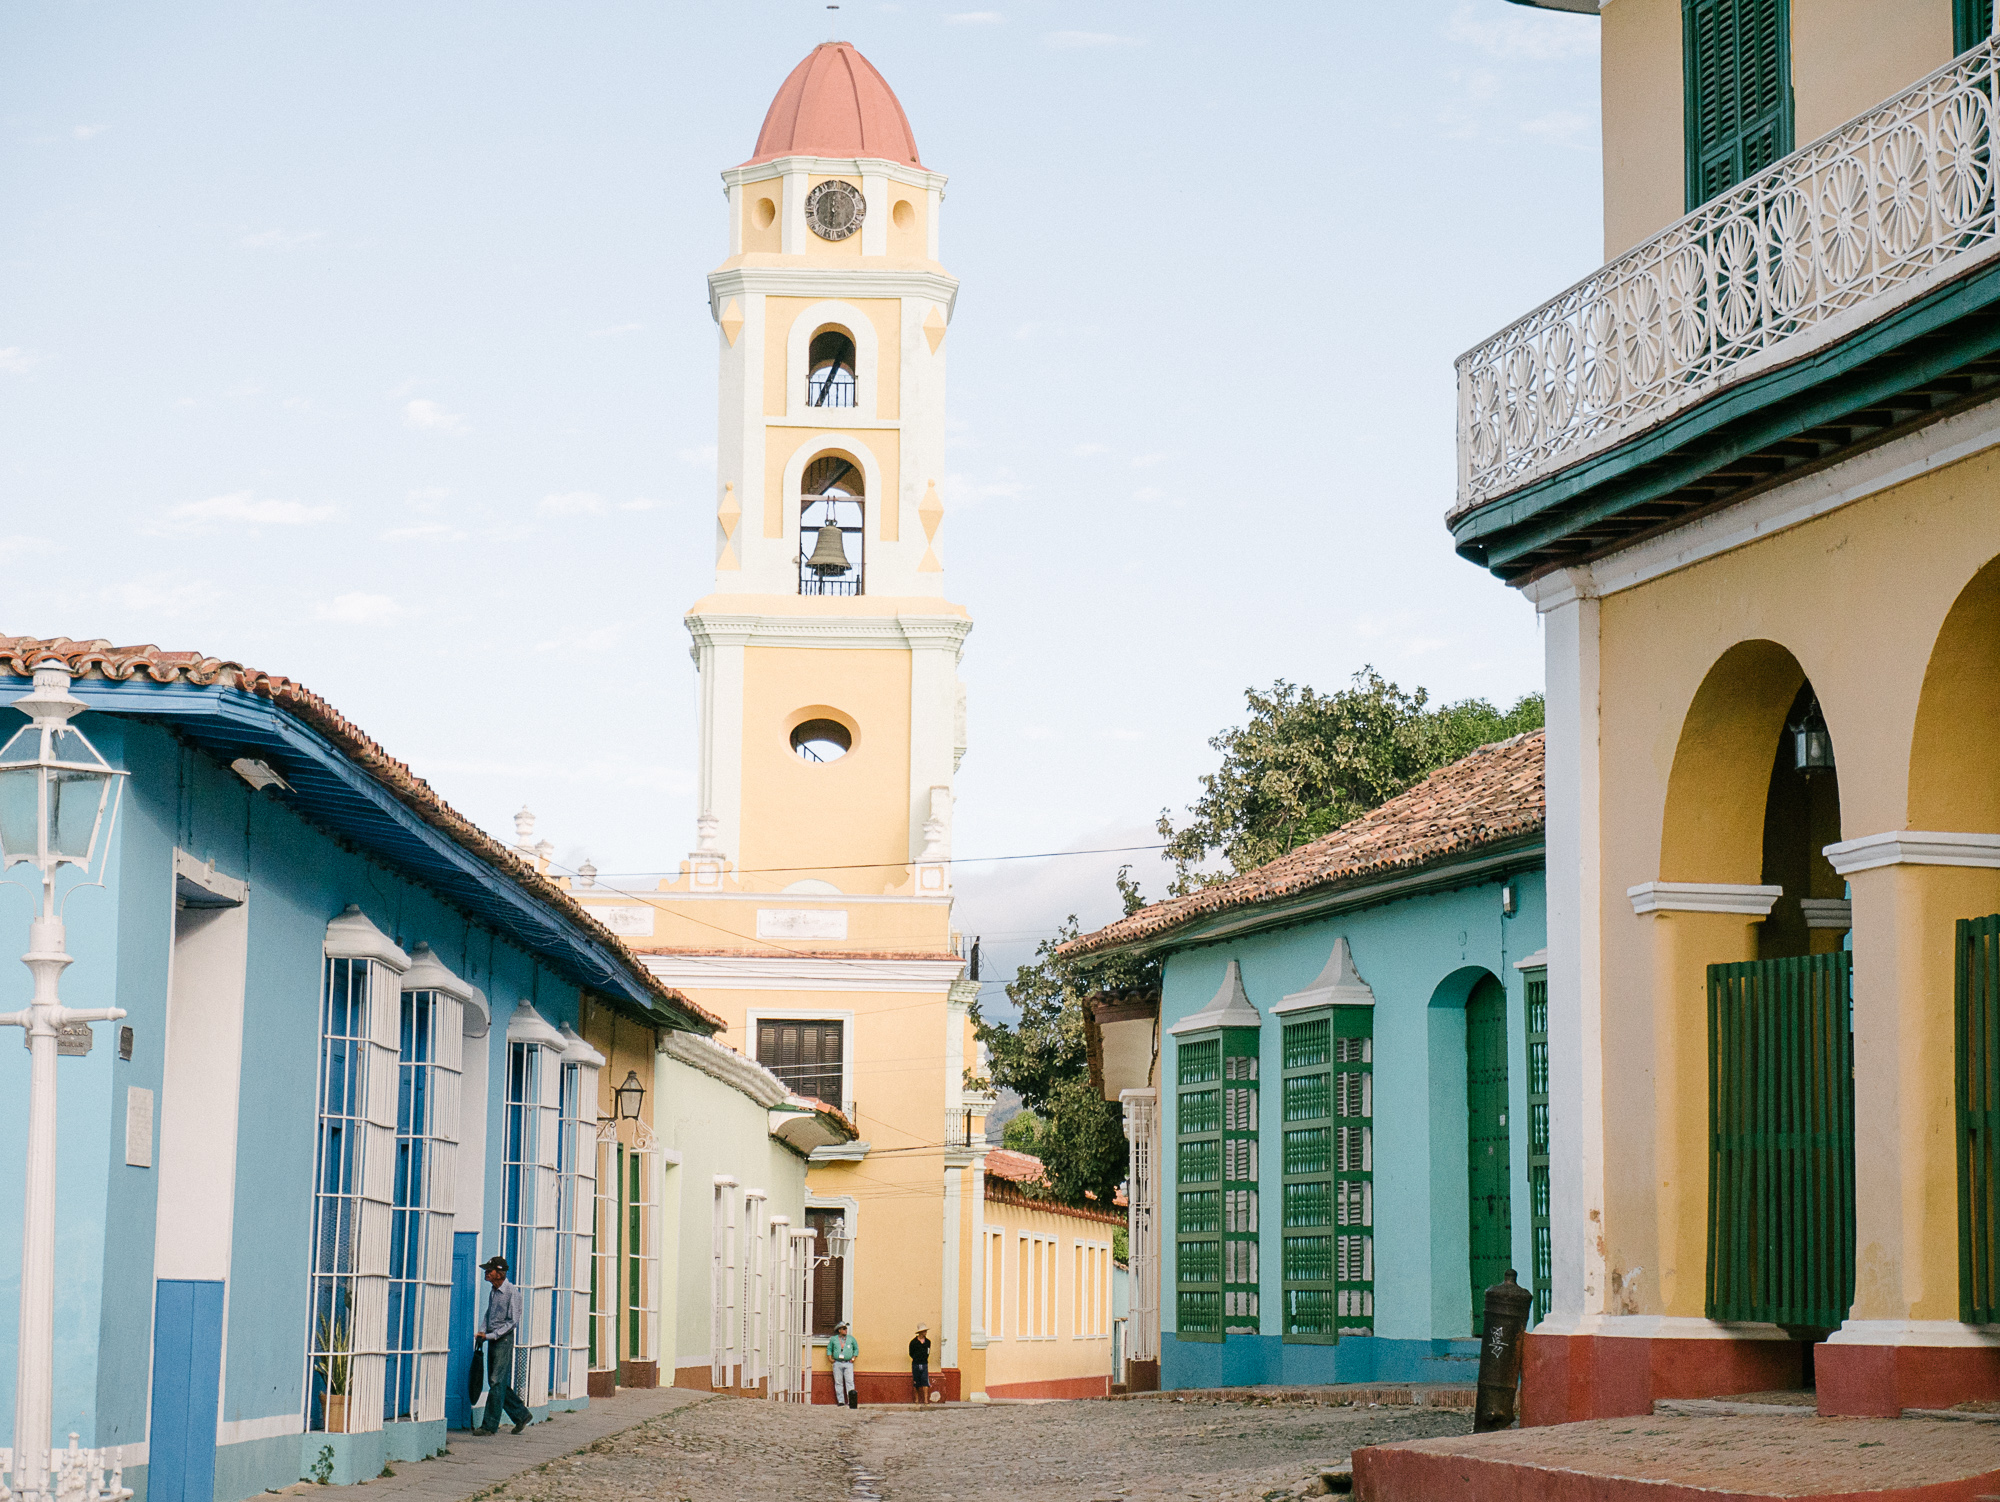 for-all-things-creative-travel-why-visit-trinidad-cuba-city-guide-printable-map.jpg